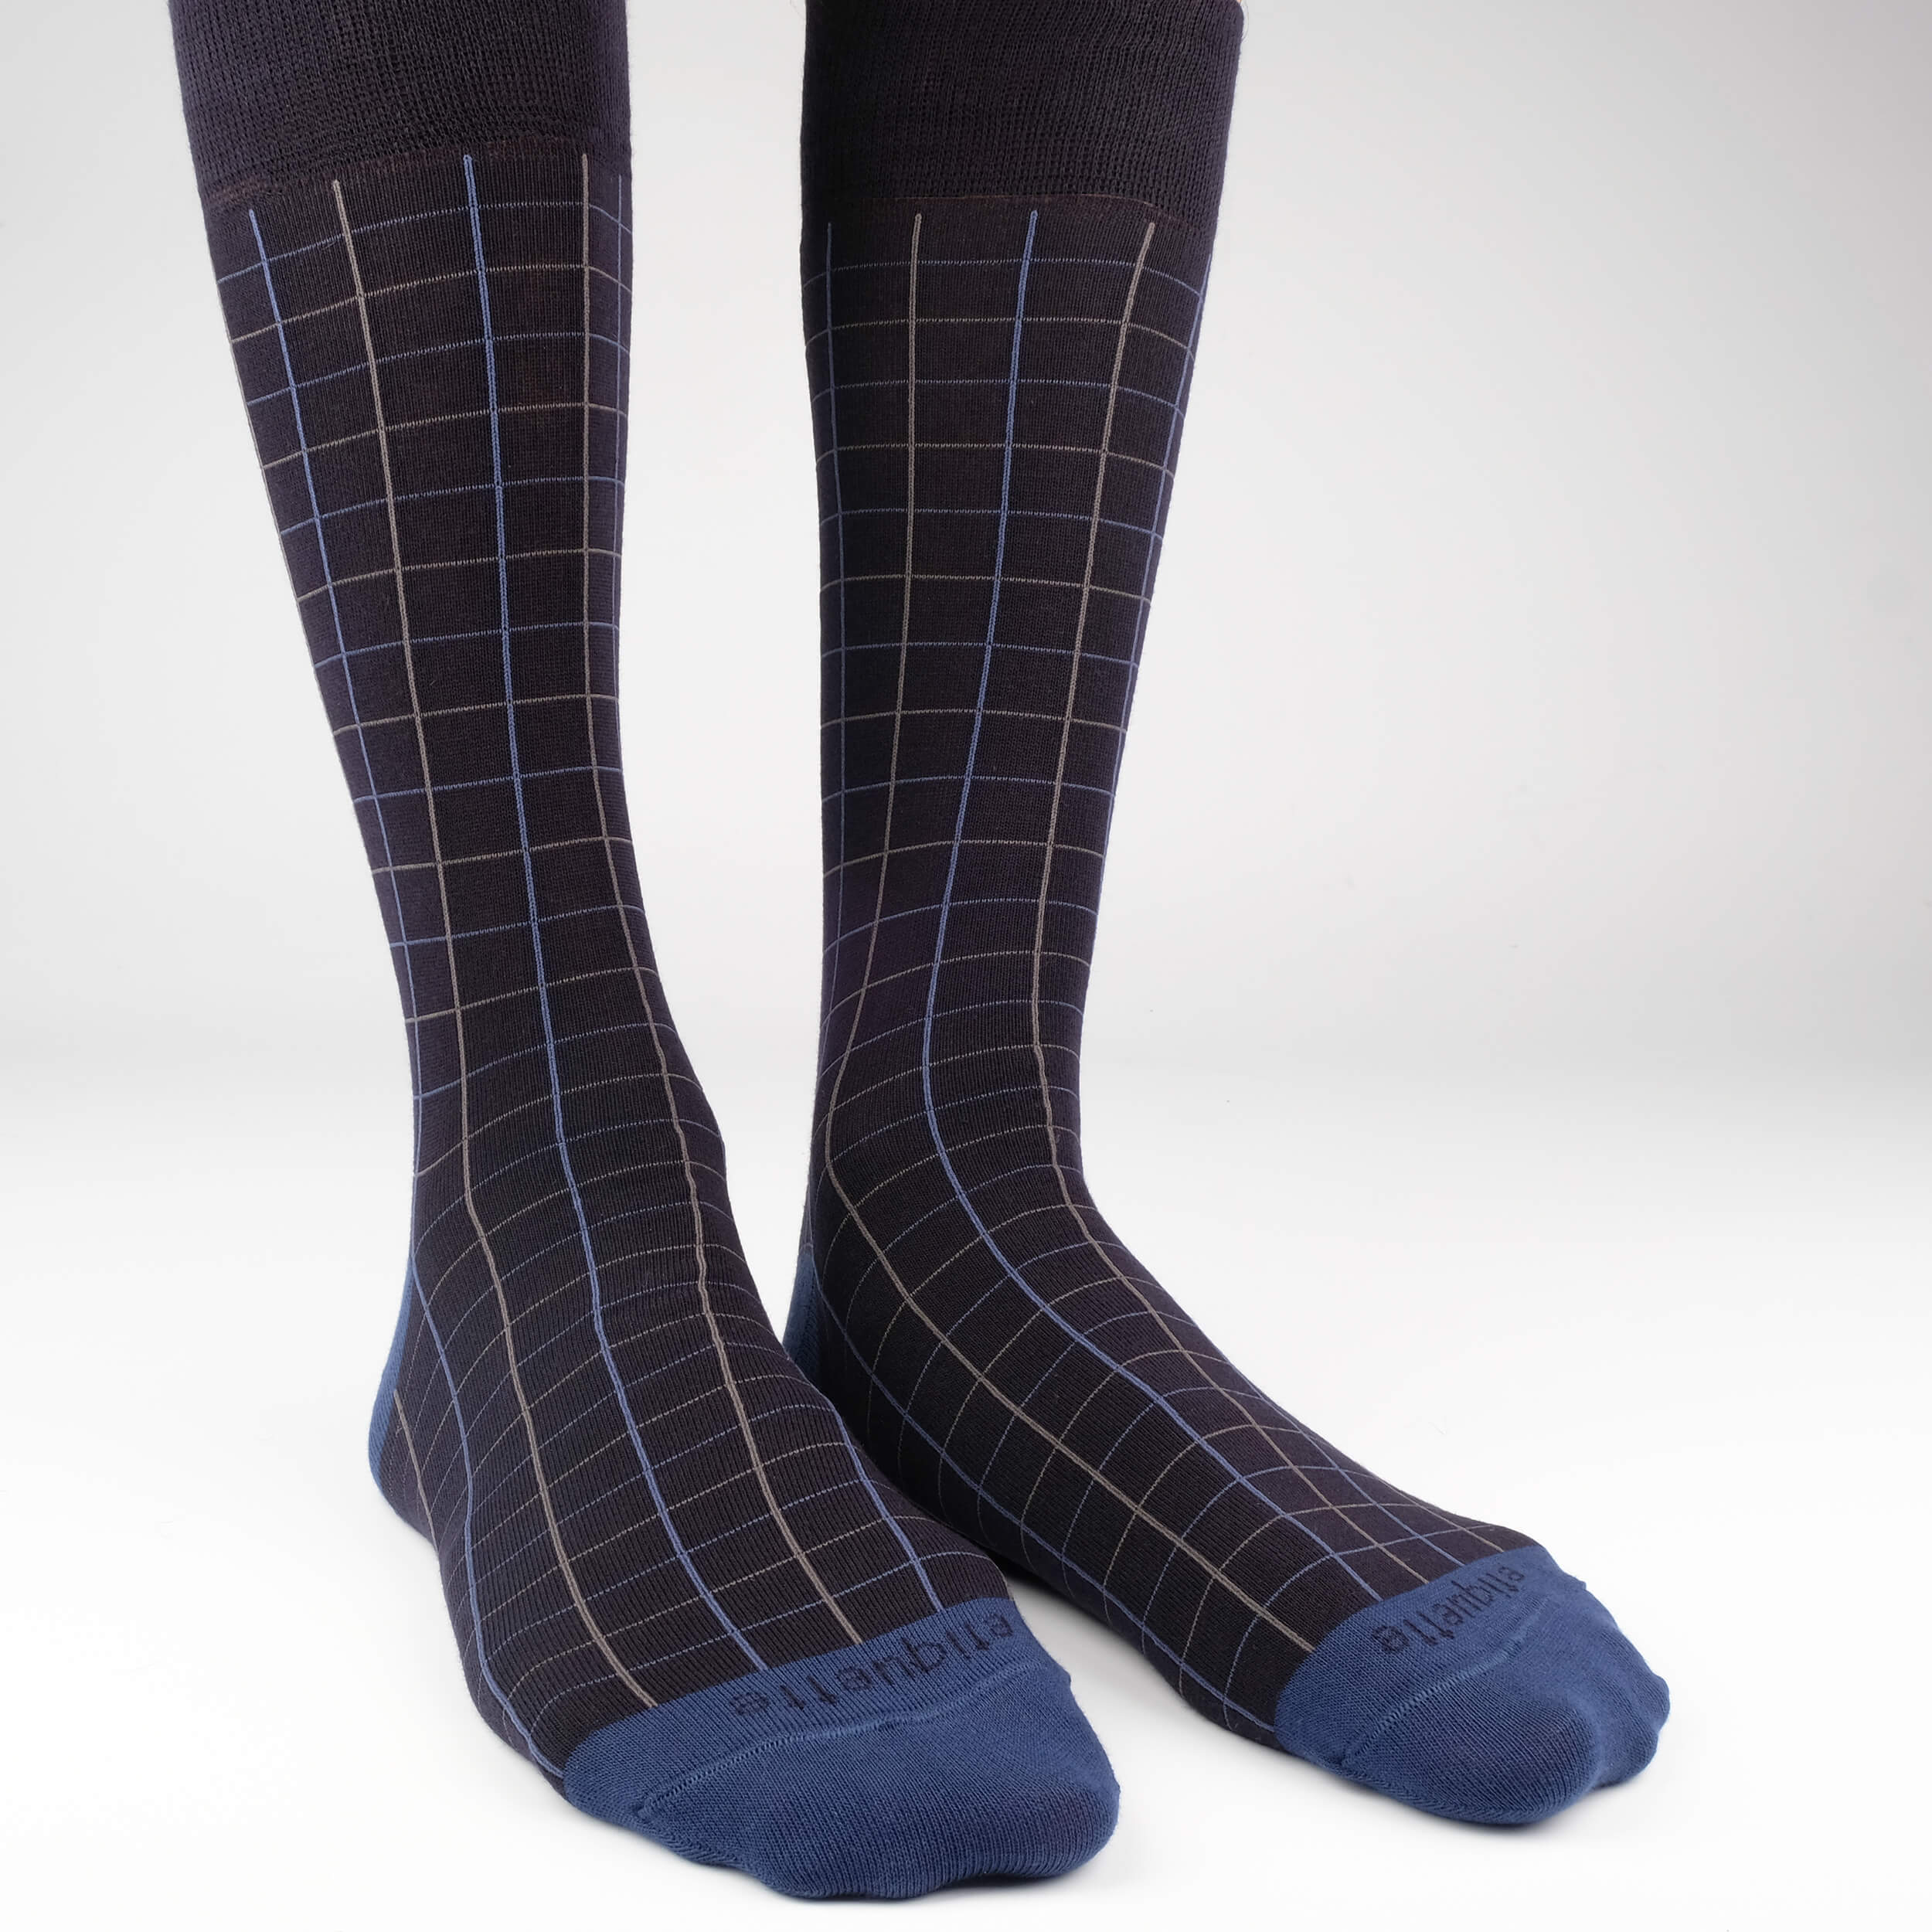 Mens Socks - Windowpane Men's Socks - Blue⎪Etiquette Clothiers